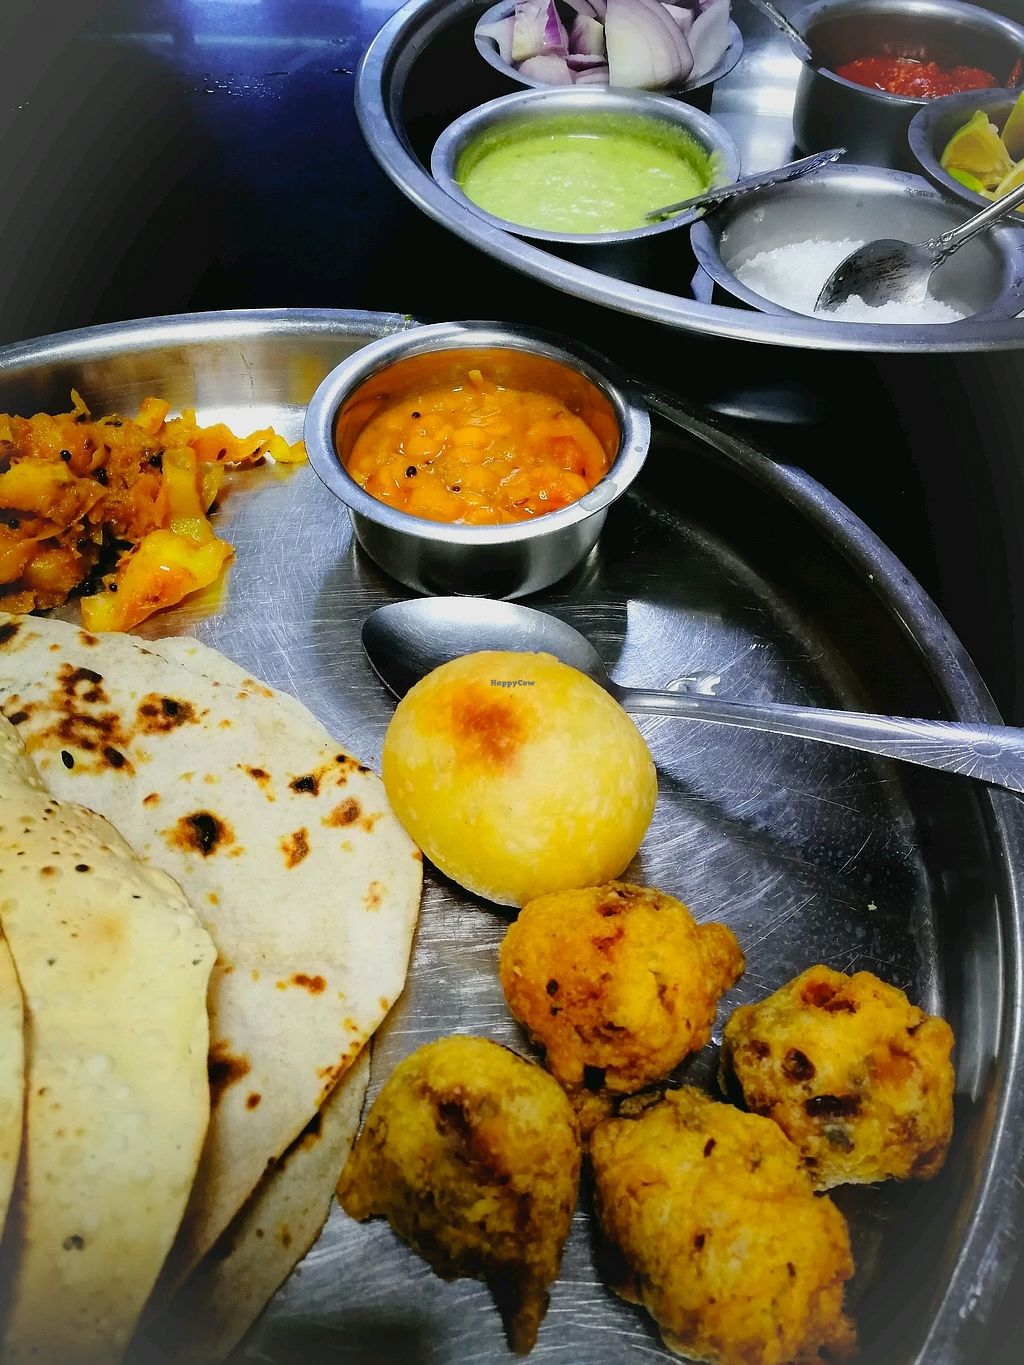 """Photo of Milan Restaurant  by <a href=""""/members/profile/Gudrun"""">Gudrun</a> <br/>A delicious vegan thali.  <br/> October 16, 2017  - <a href='/contact/abuse/image/20559/315896'>Report</a>"""